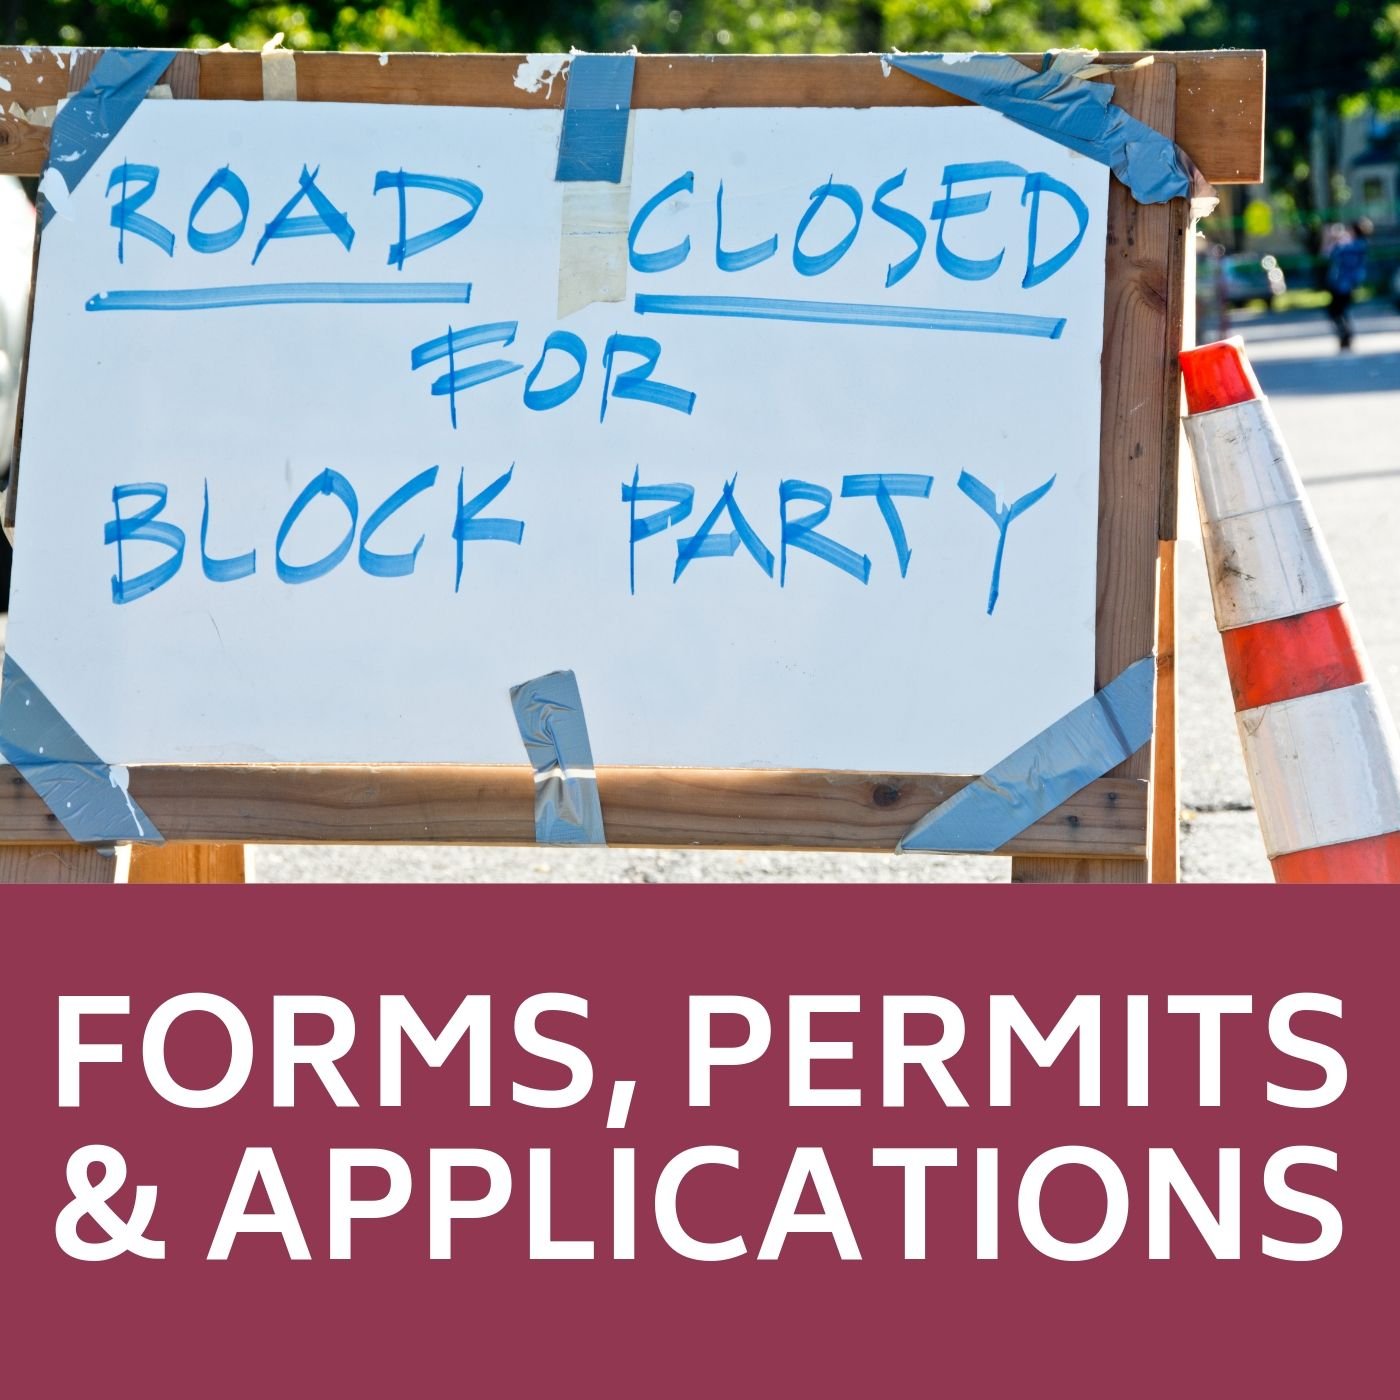 Block Party Road Closed sign that links to information on getting a block party permit.